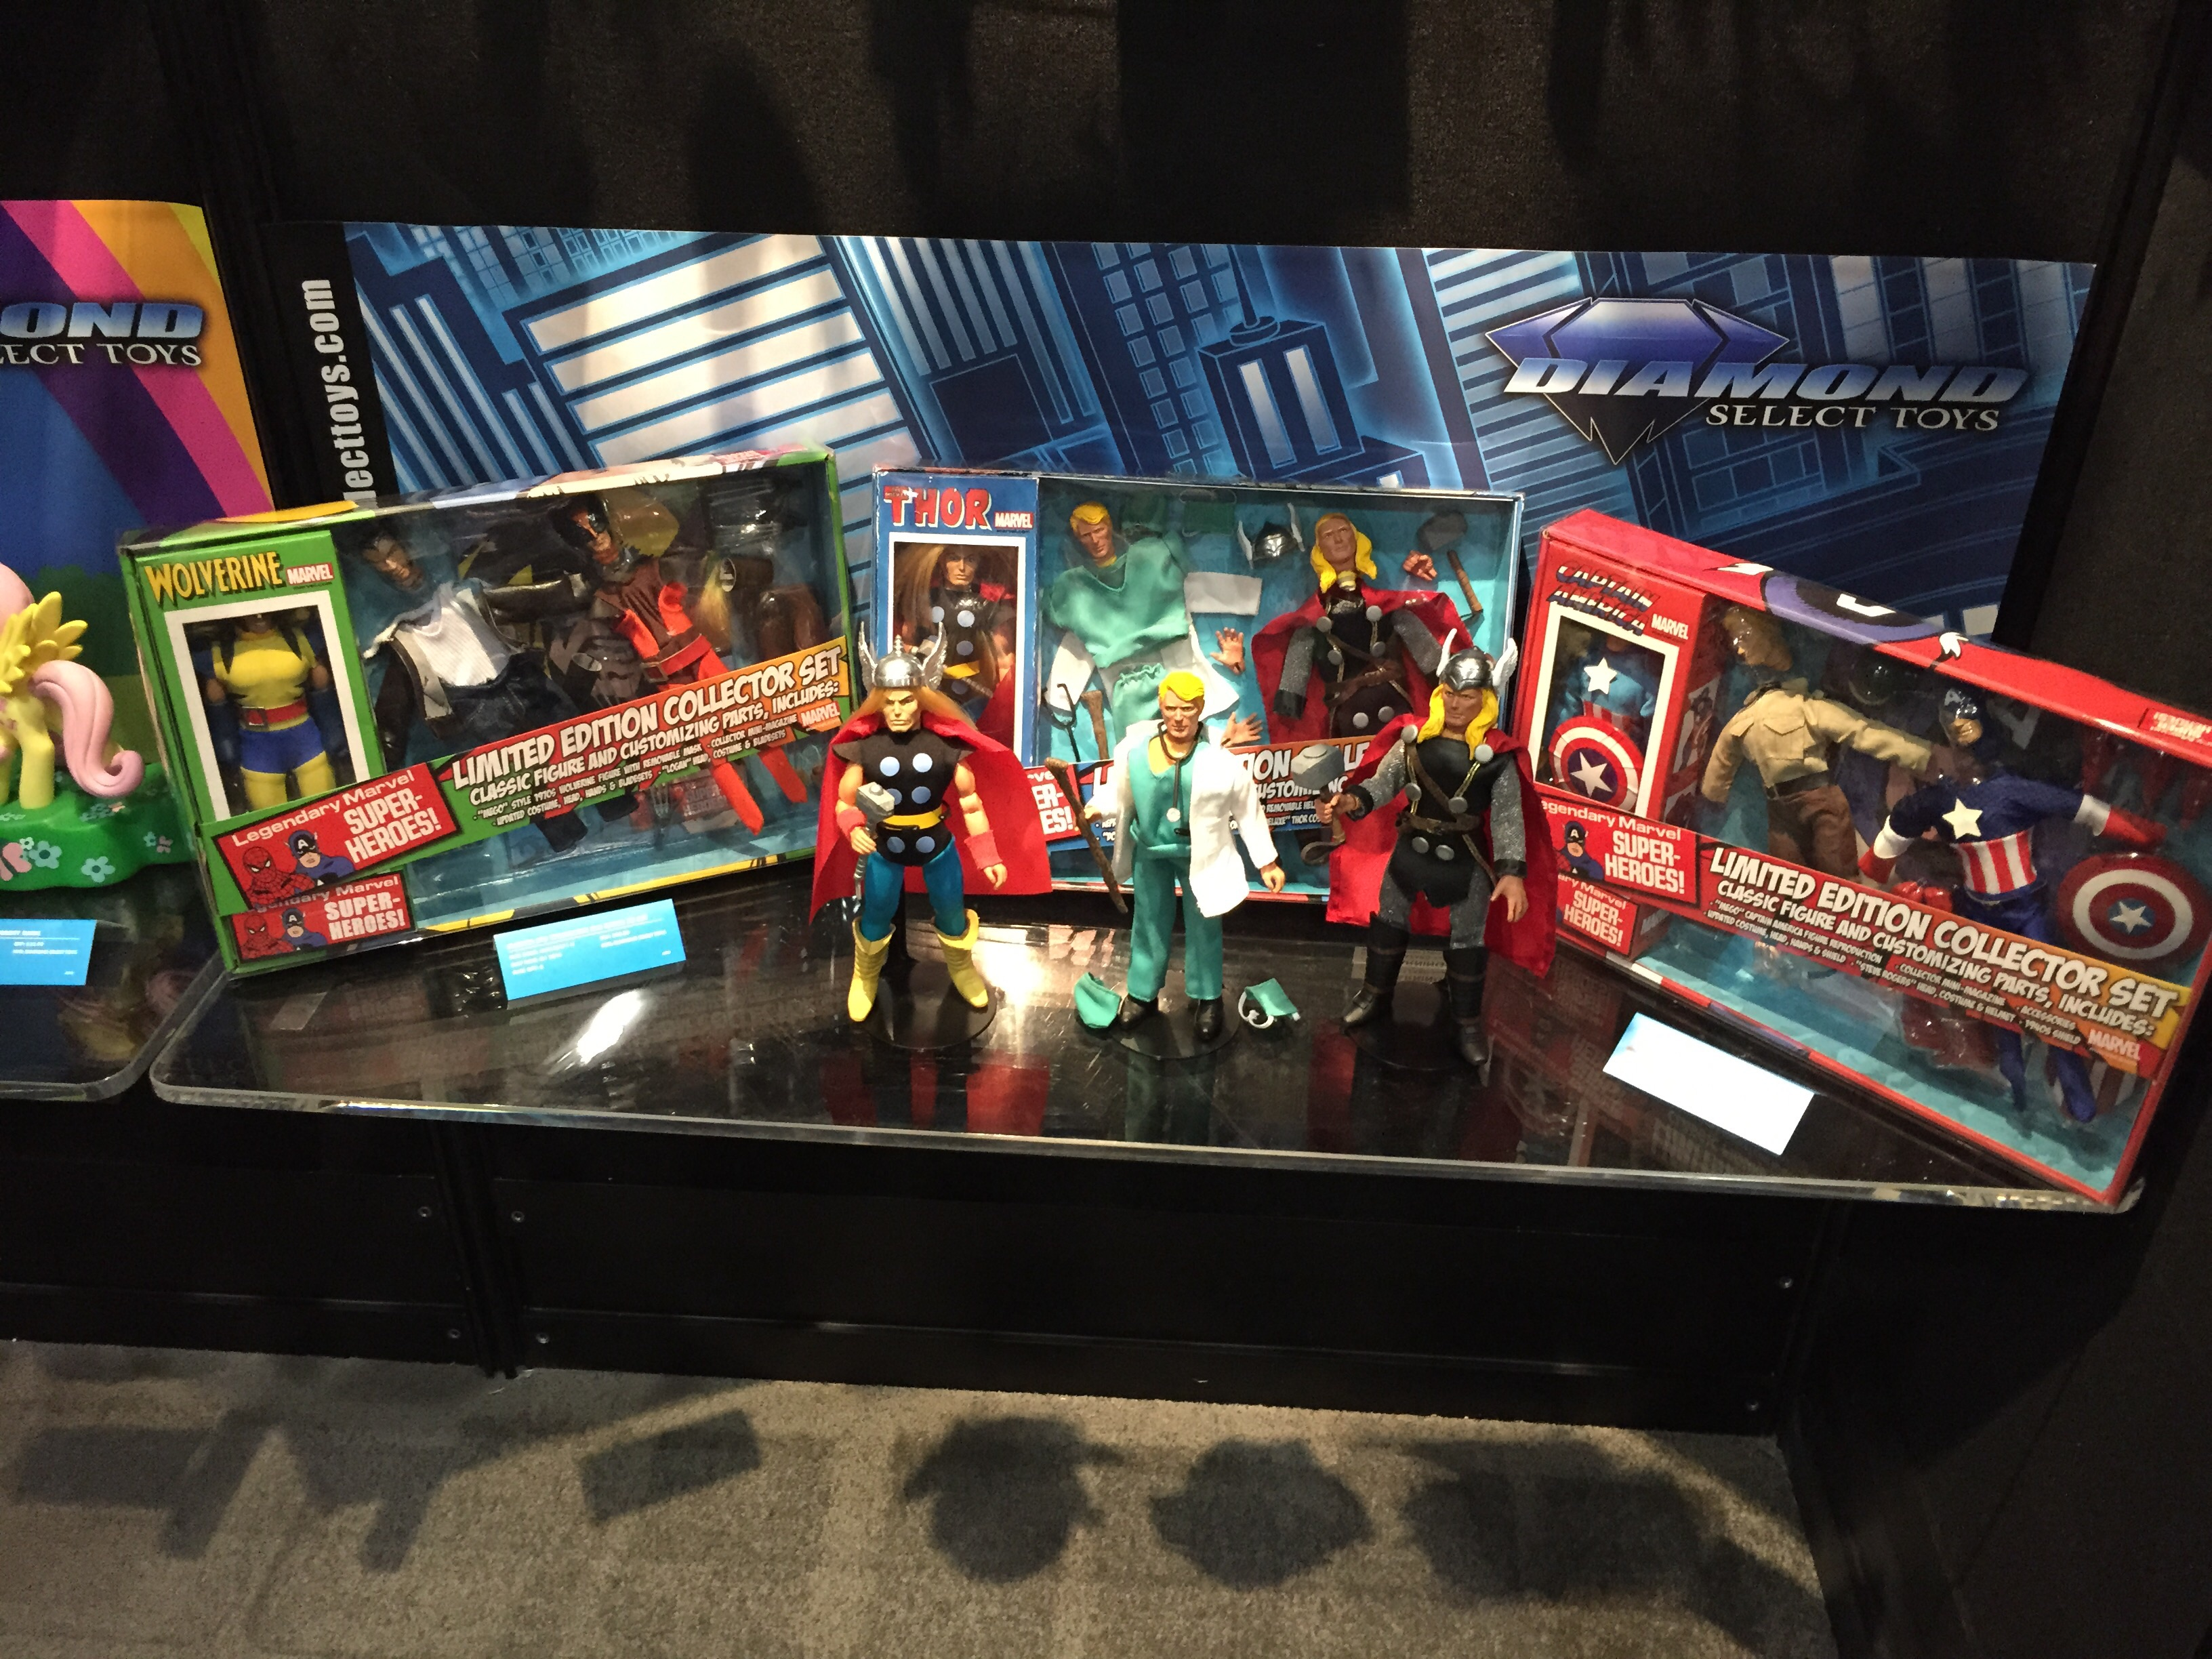 New Marvel figures